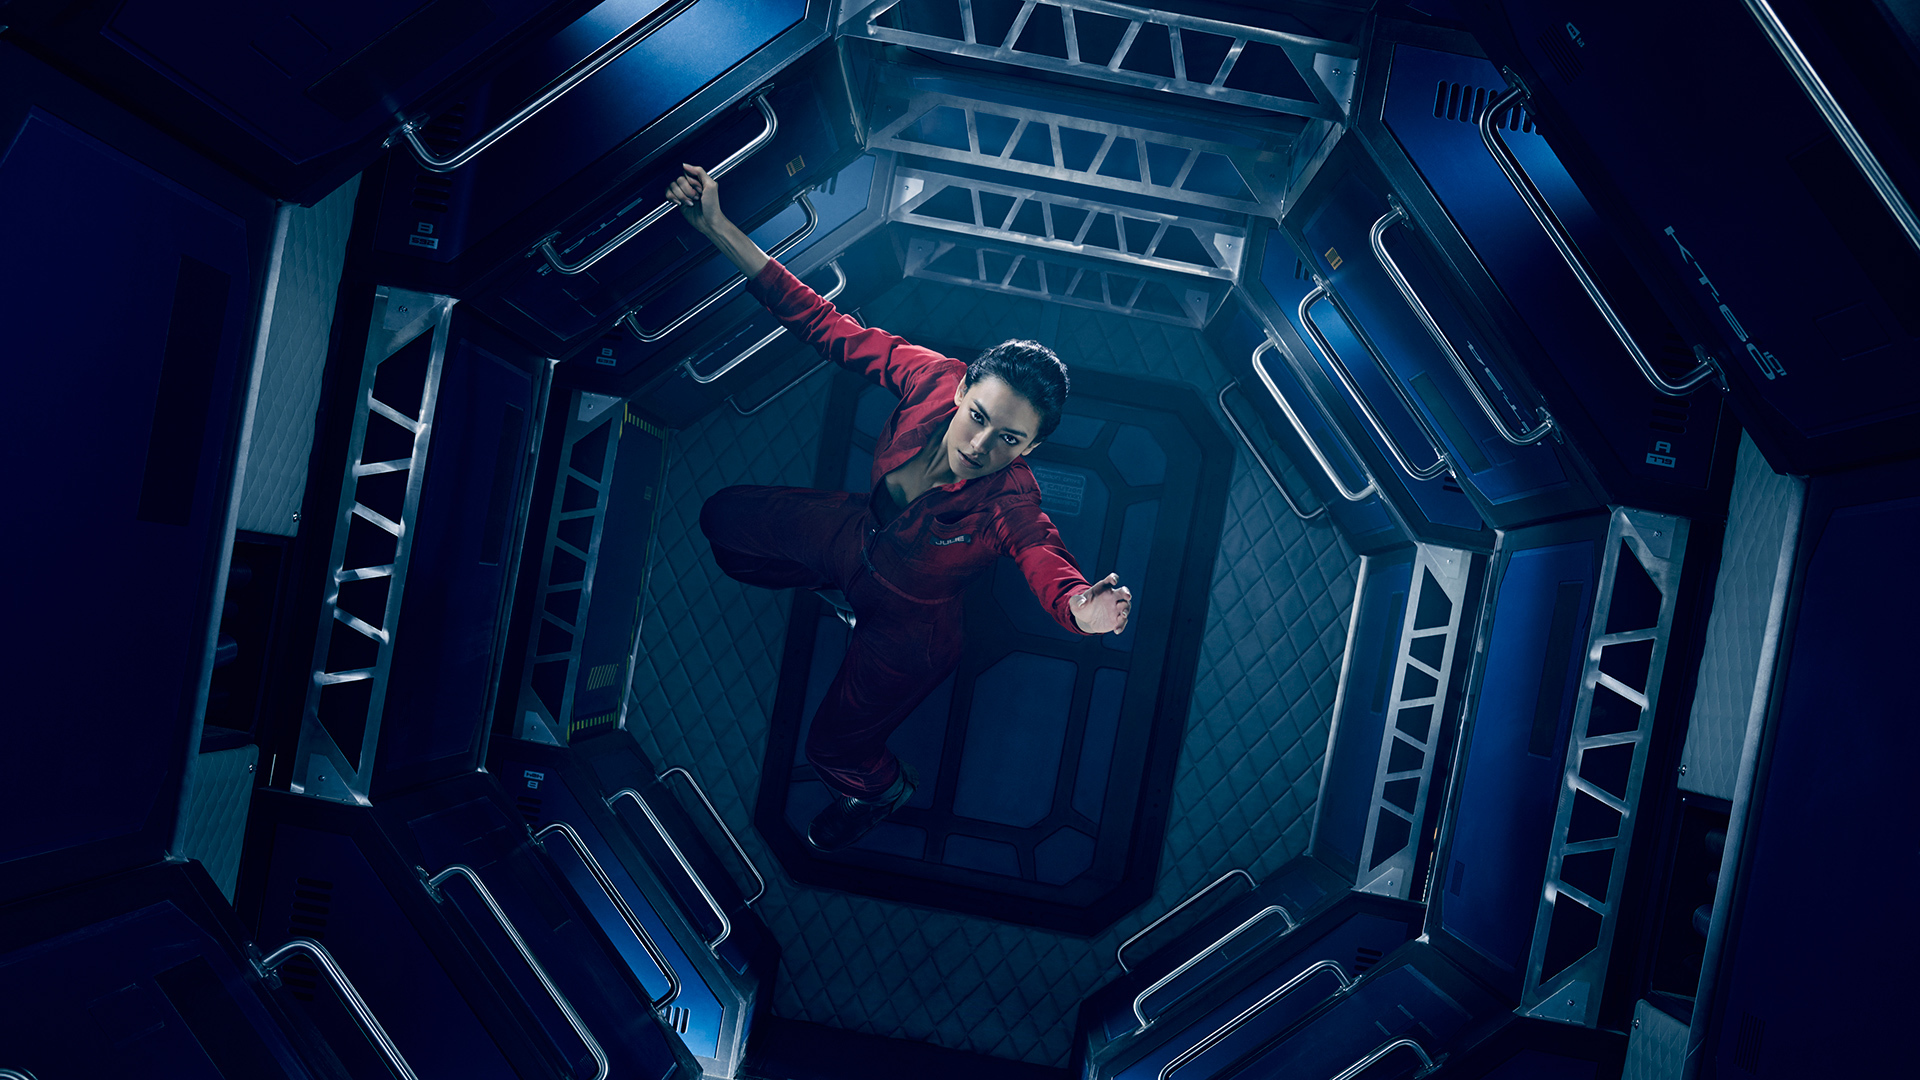 The Expanse Wallpapers, Pictures, Images